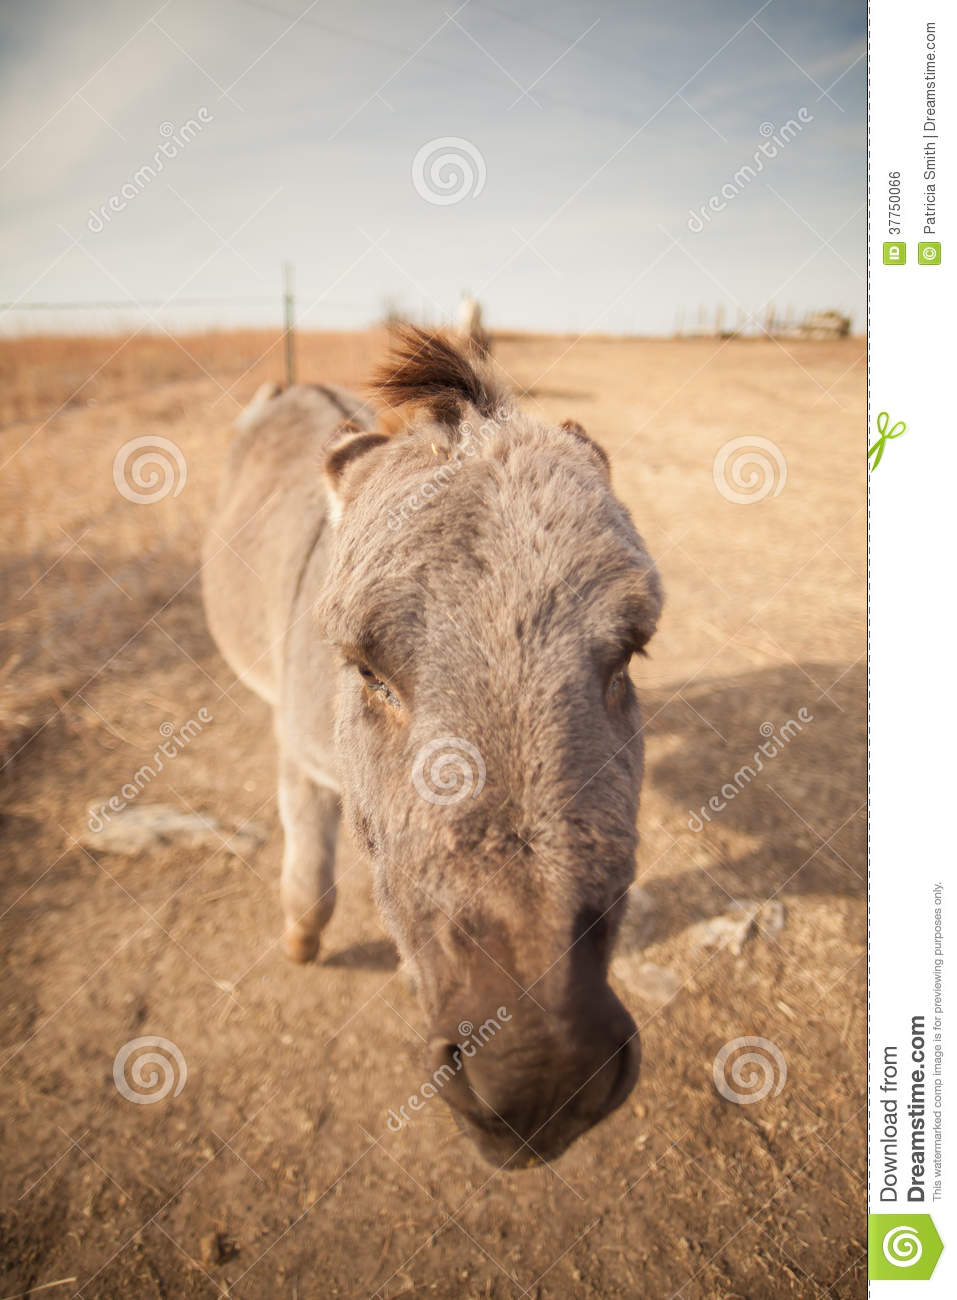 Vertical wide angle portrait of an ugly jackass miniature donkey.